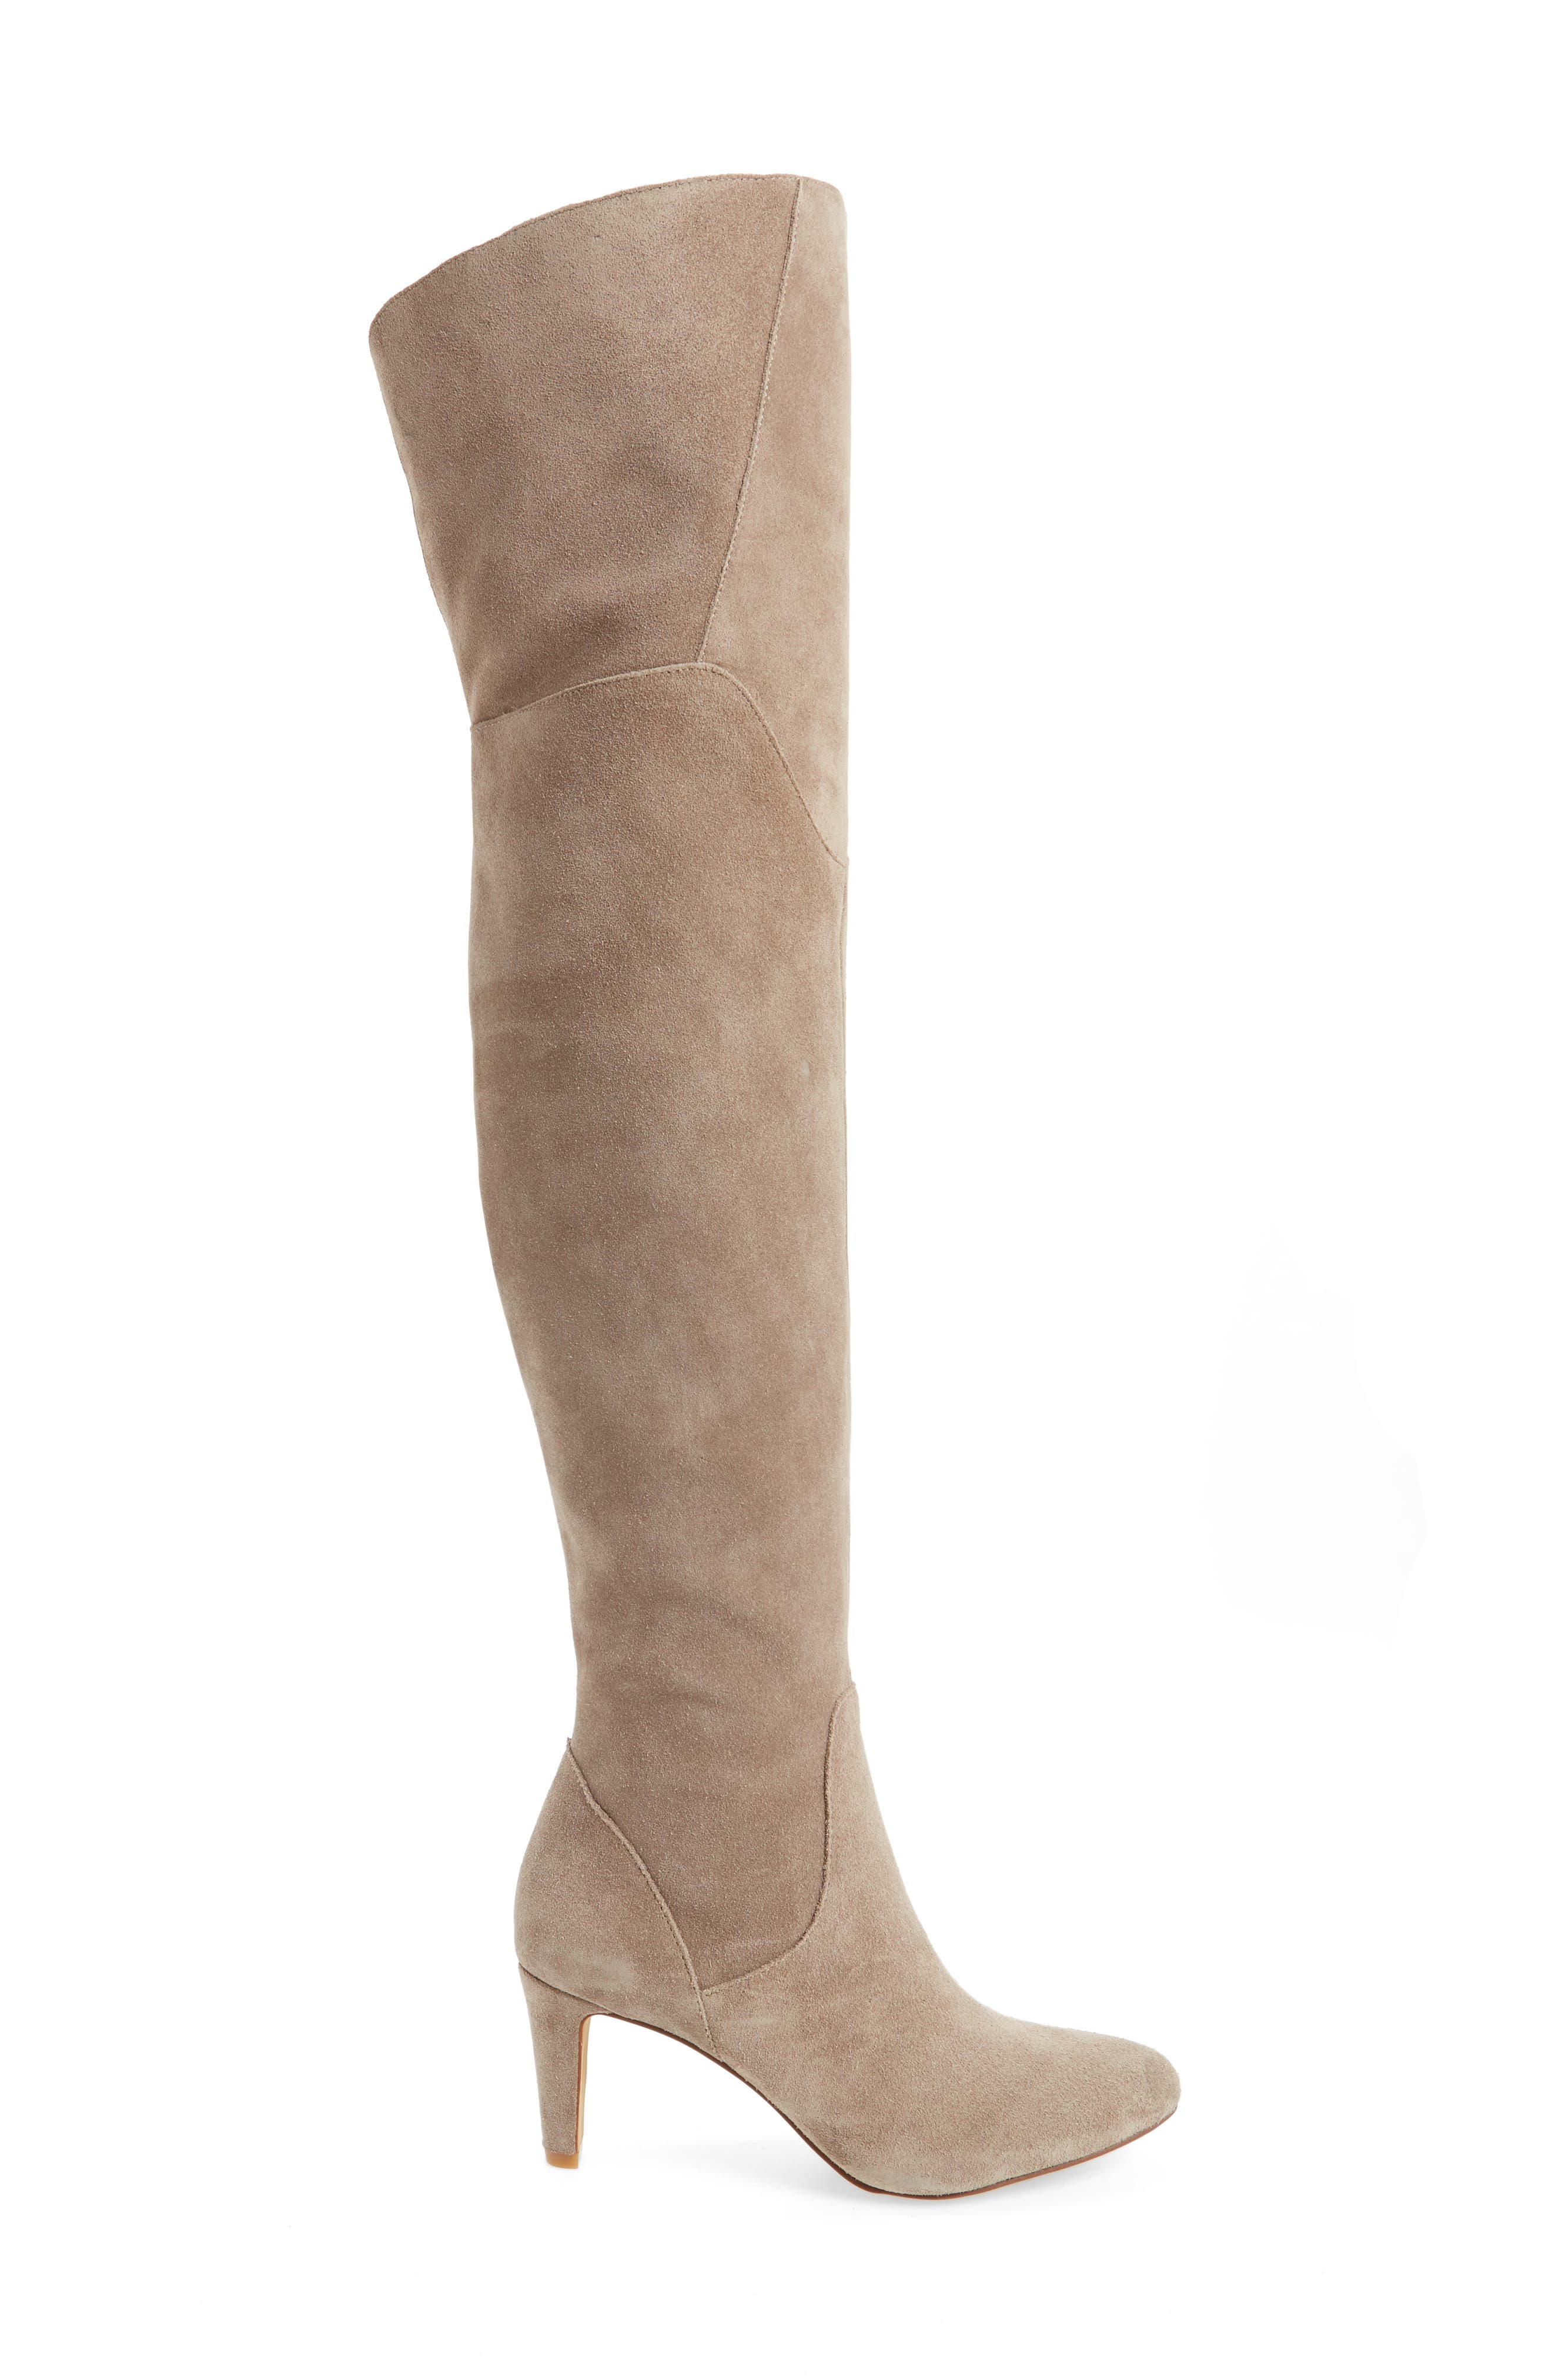 Armaceli Over the Knee Boot,                             Alternate thumbnail 11, color,